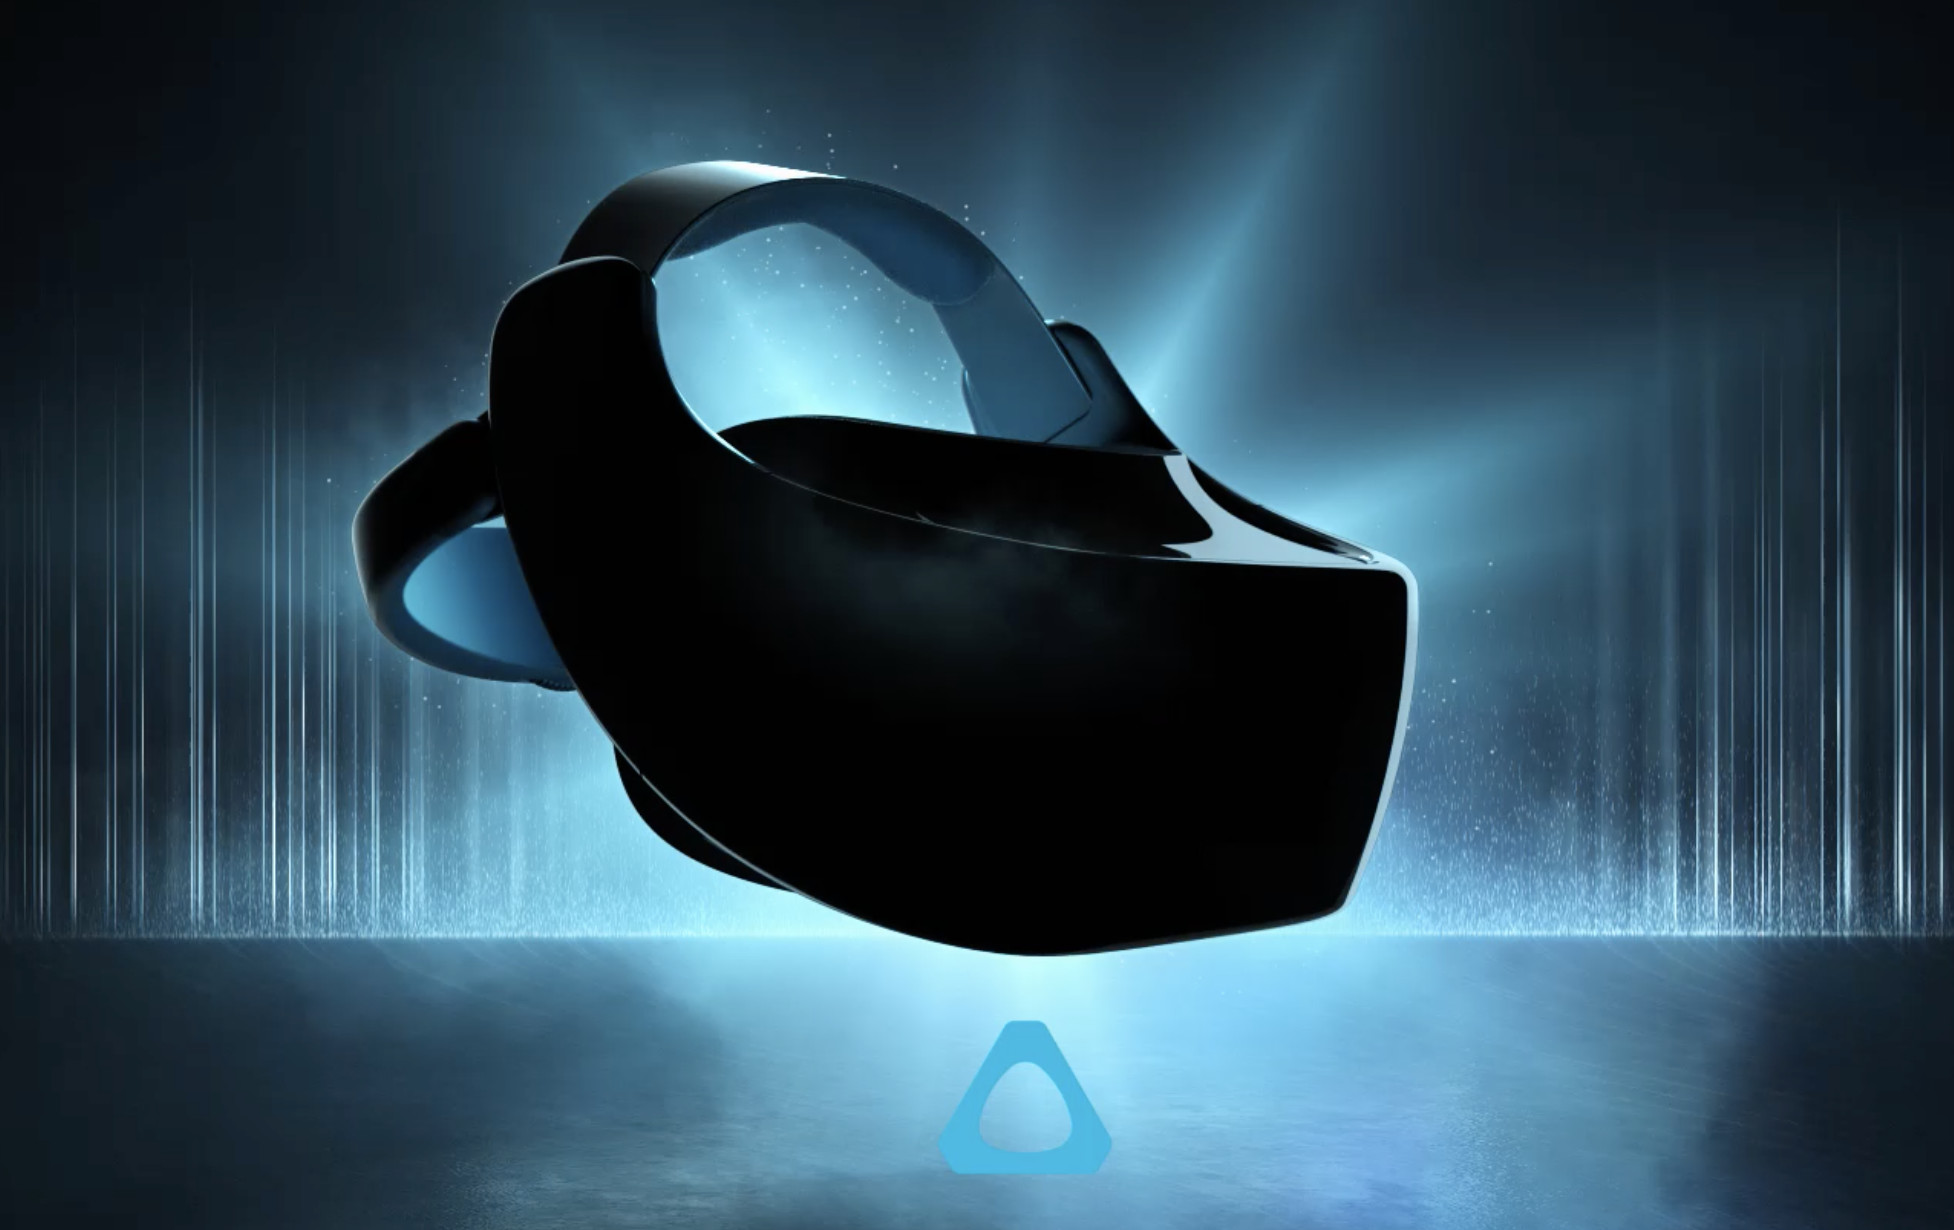 HTC Vive Focus standalone VR headset eliminates wires